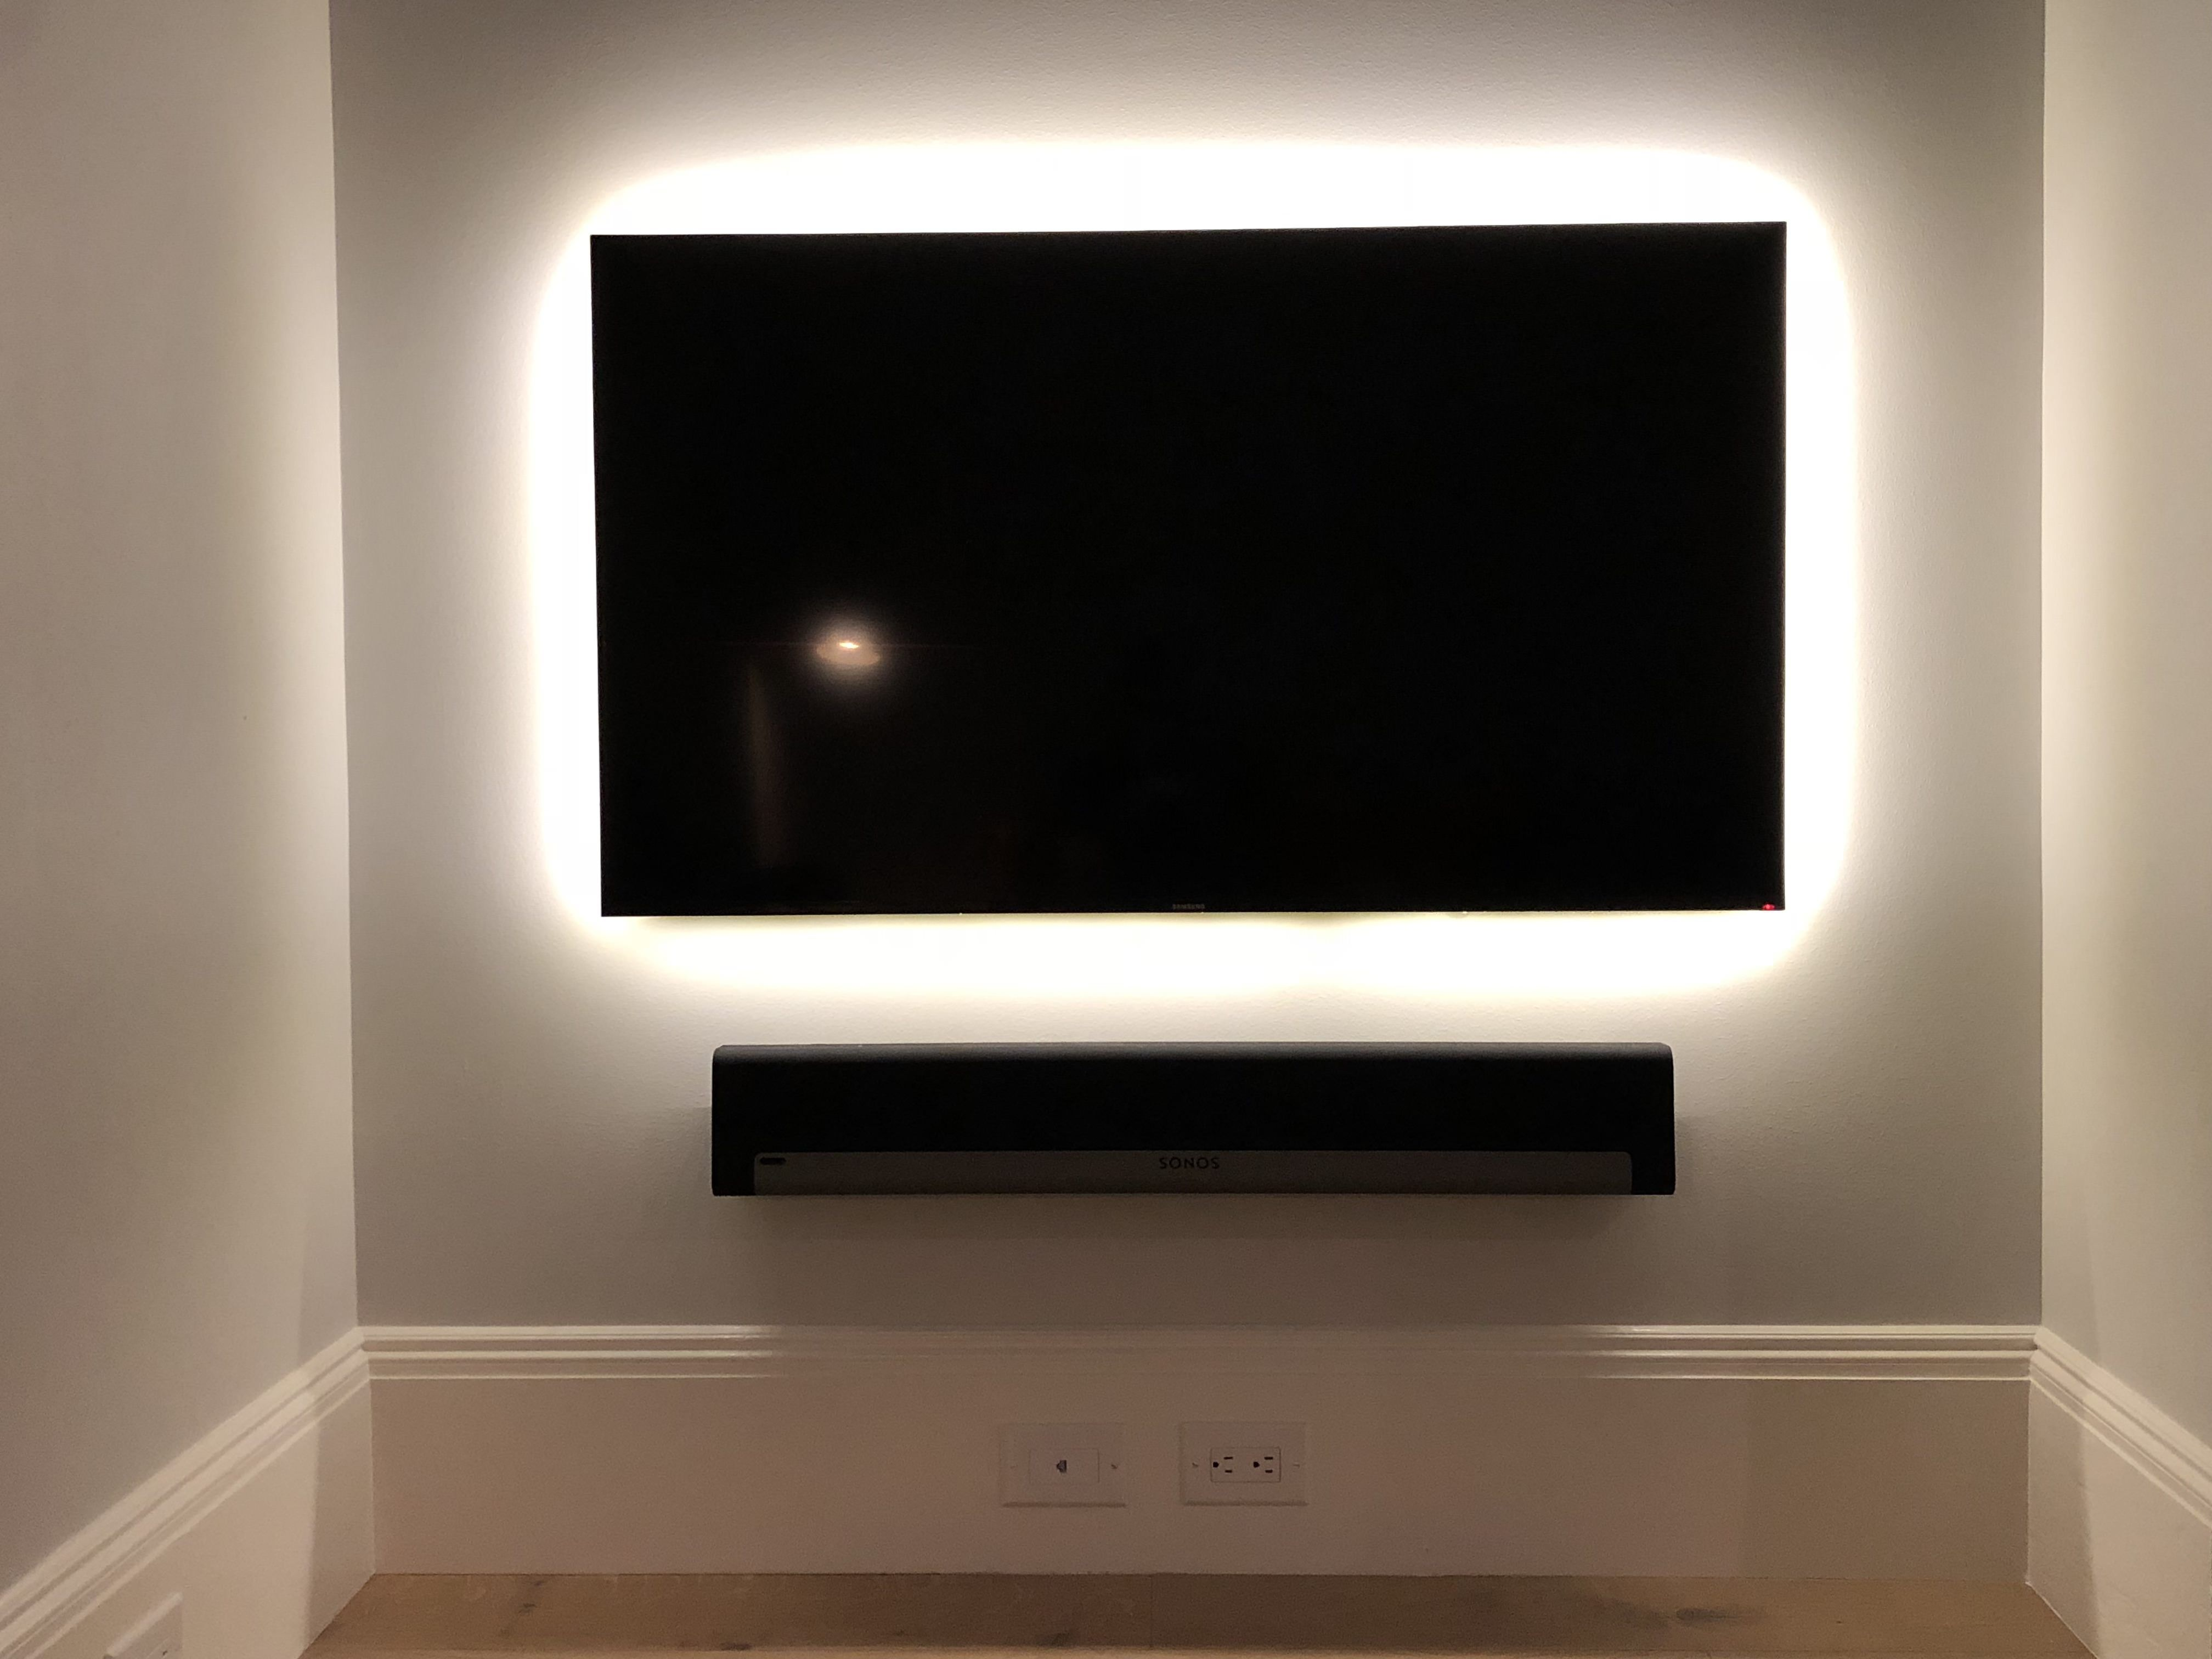 Custom Homekit Controlled Tv Backlight With A 3d Printed Case Handmade Crafts Howto Diy Kit Homes Tv Backlight Wall Mounted Tv